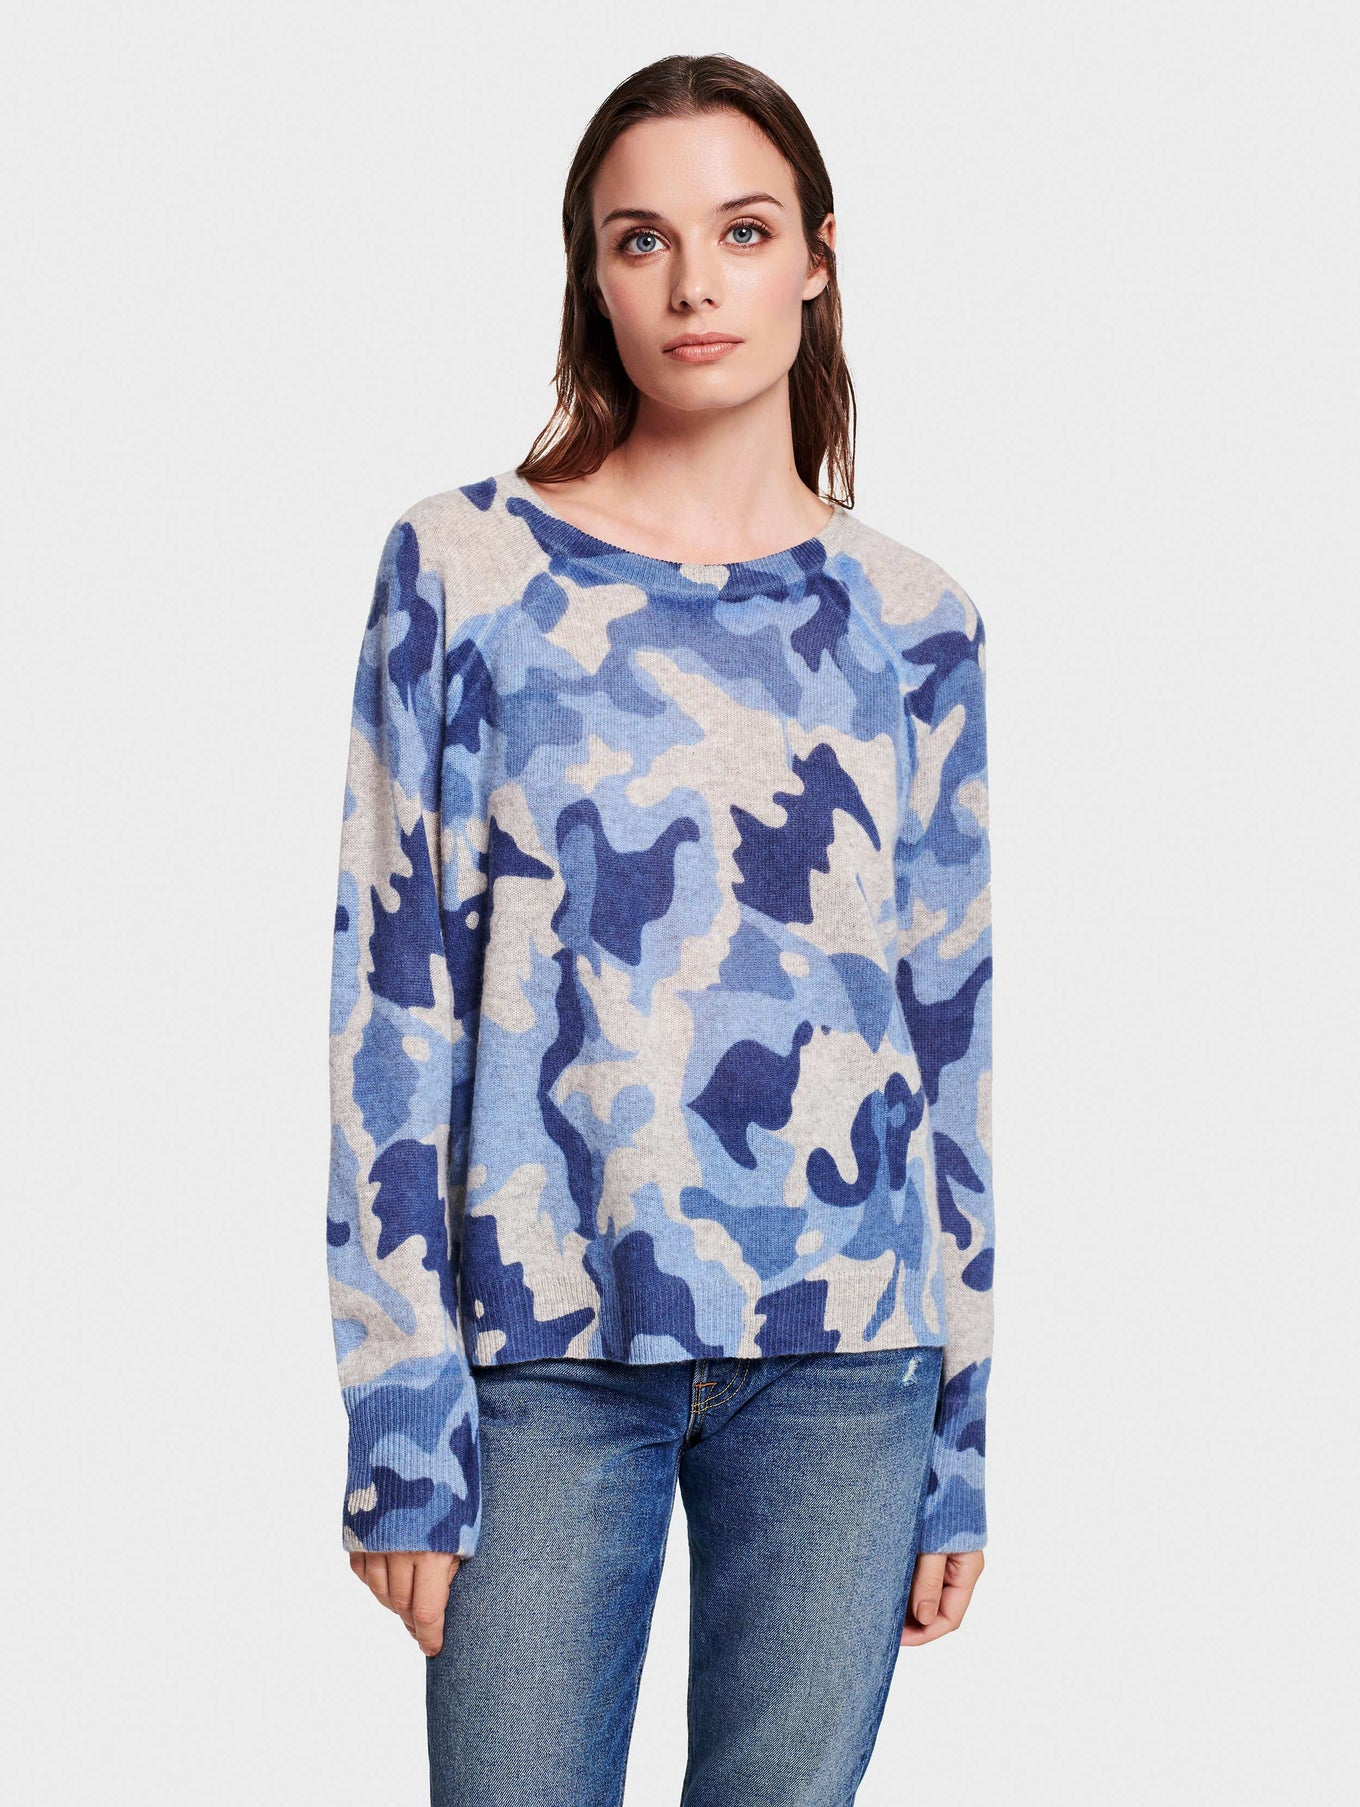 Camo Essential Cashmere Sweatshirt for Women